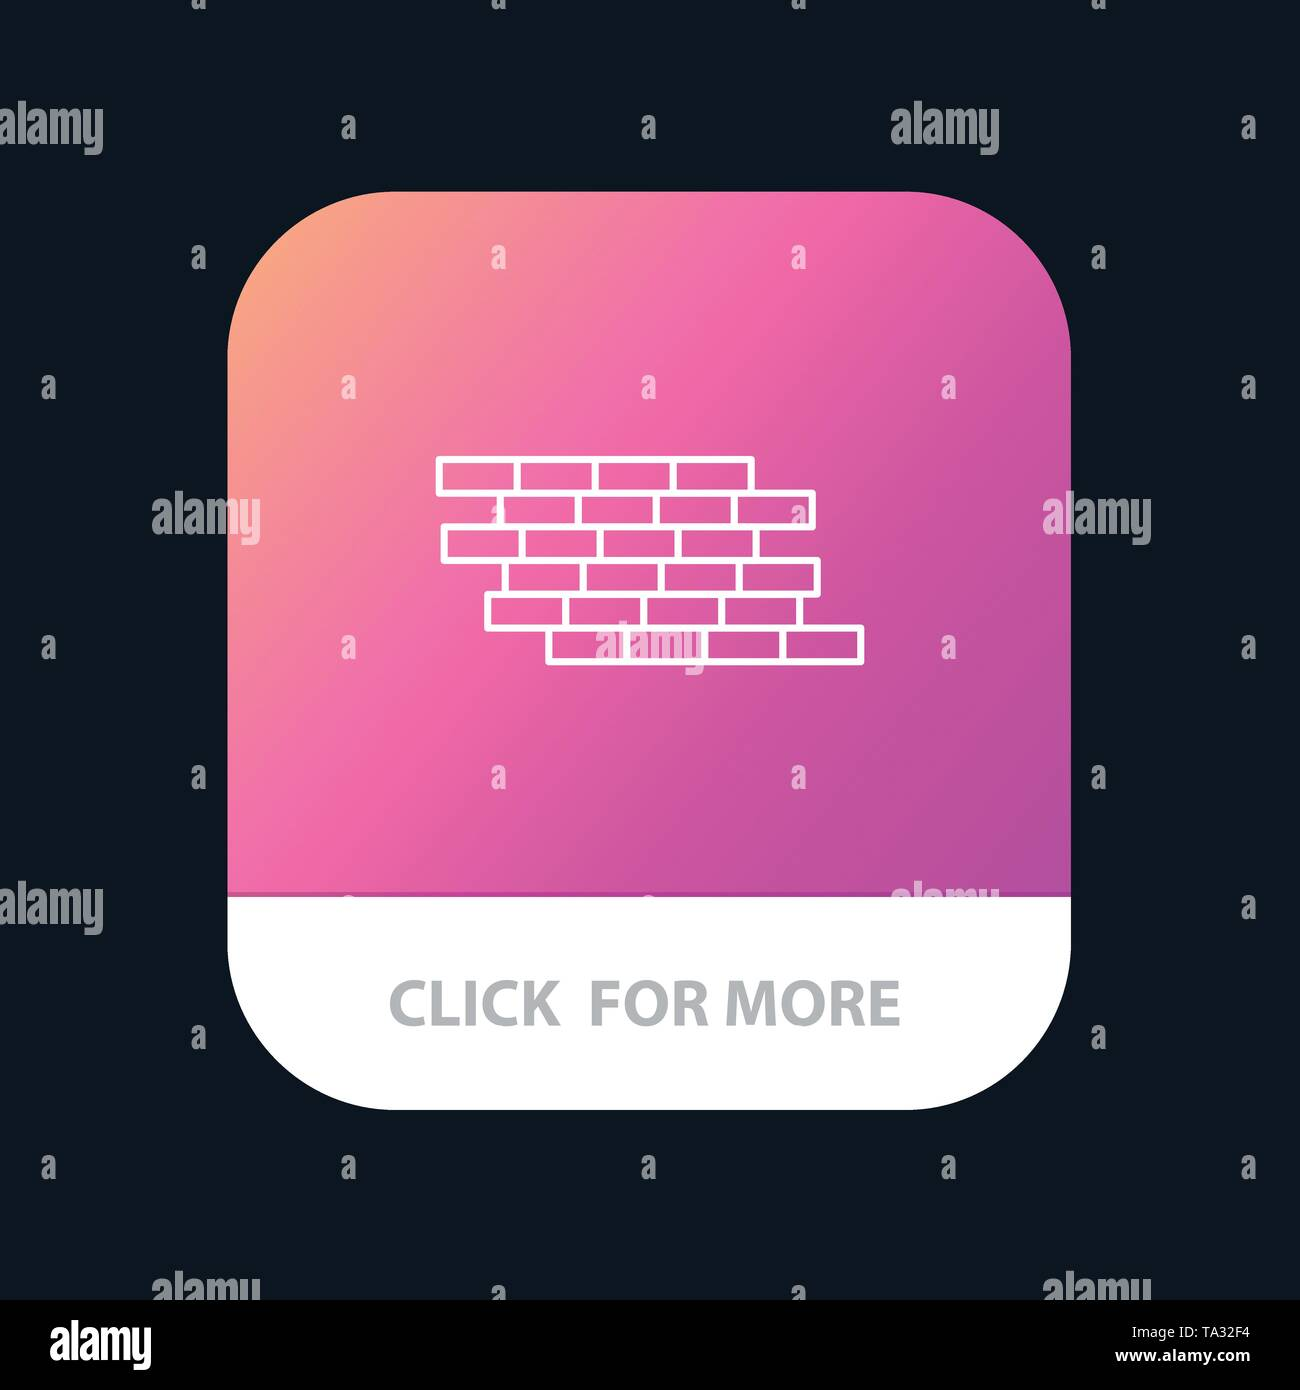 Firewall, Security, Wall, Brick, Bricks Mobile App Button. Android and IOS Line Version - Stock Image